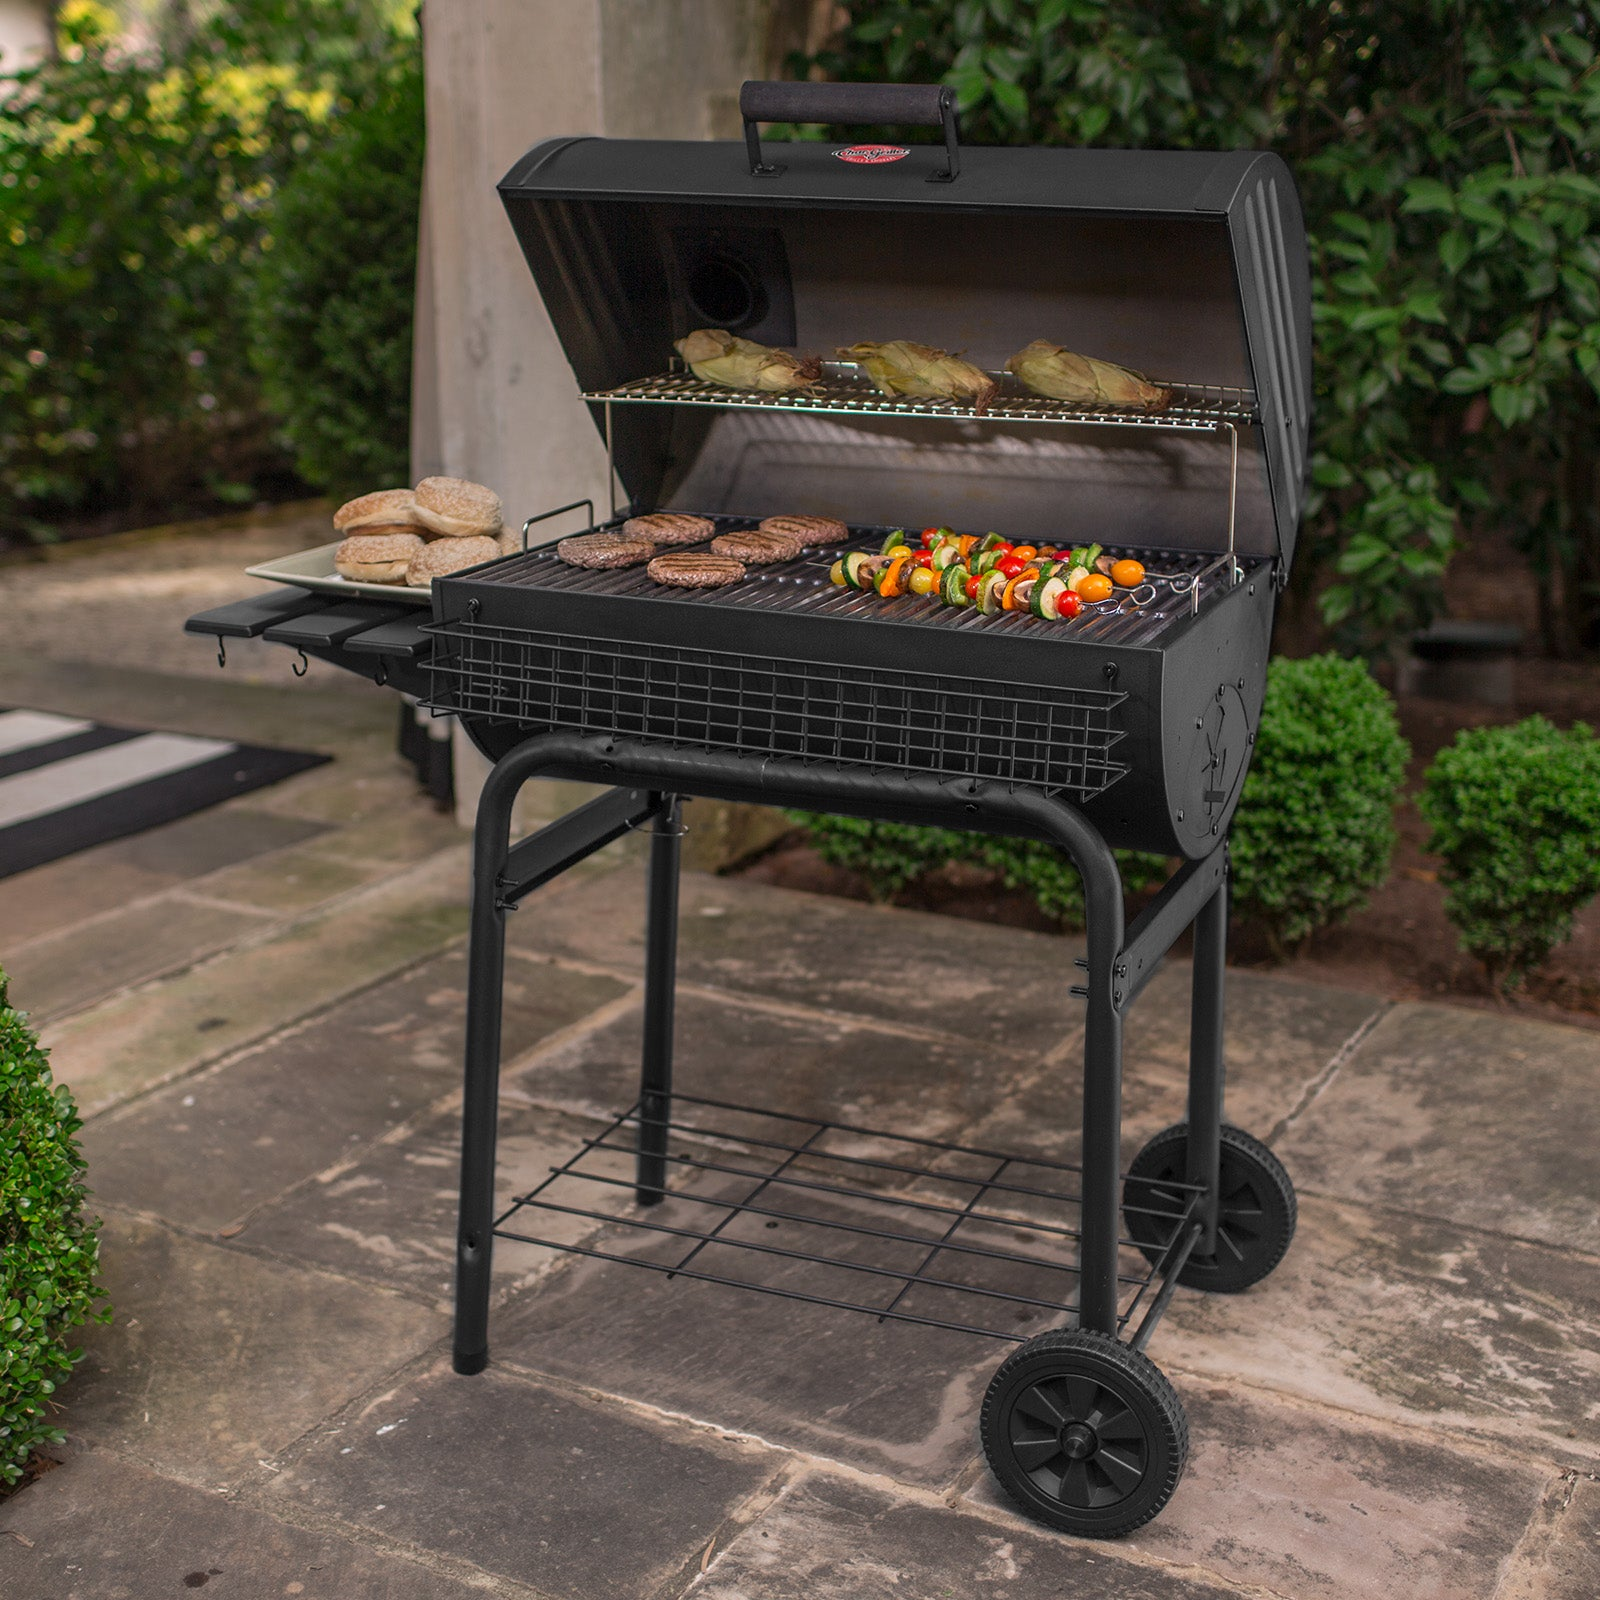 Deluxe Griller Charcoal Grill